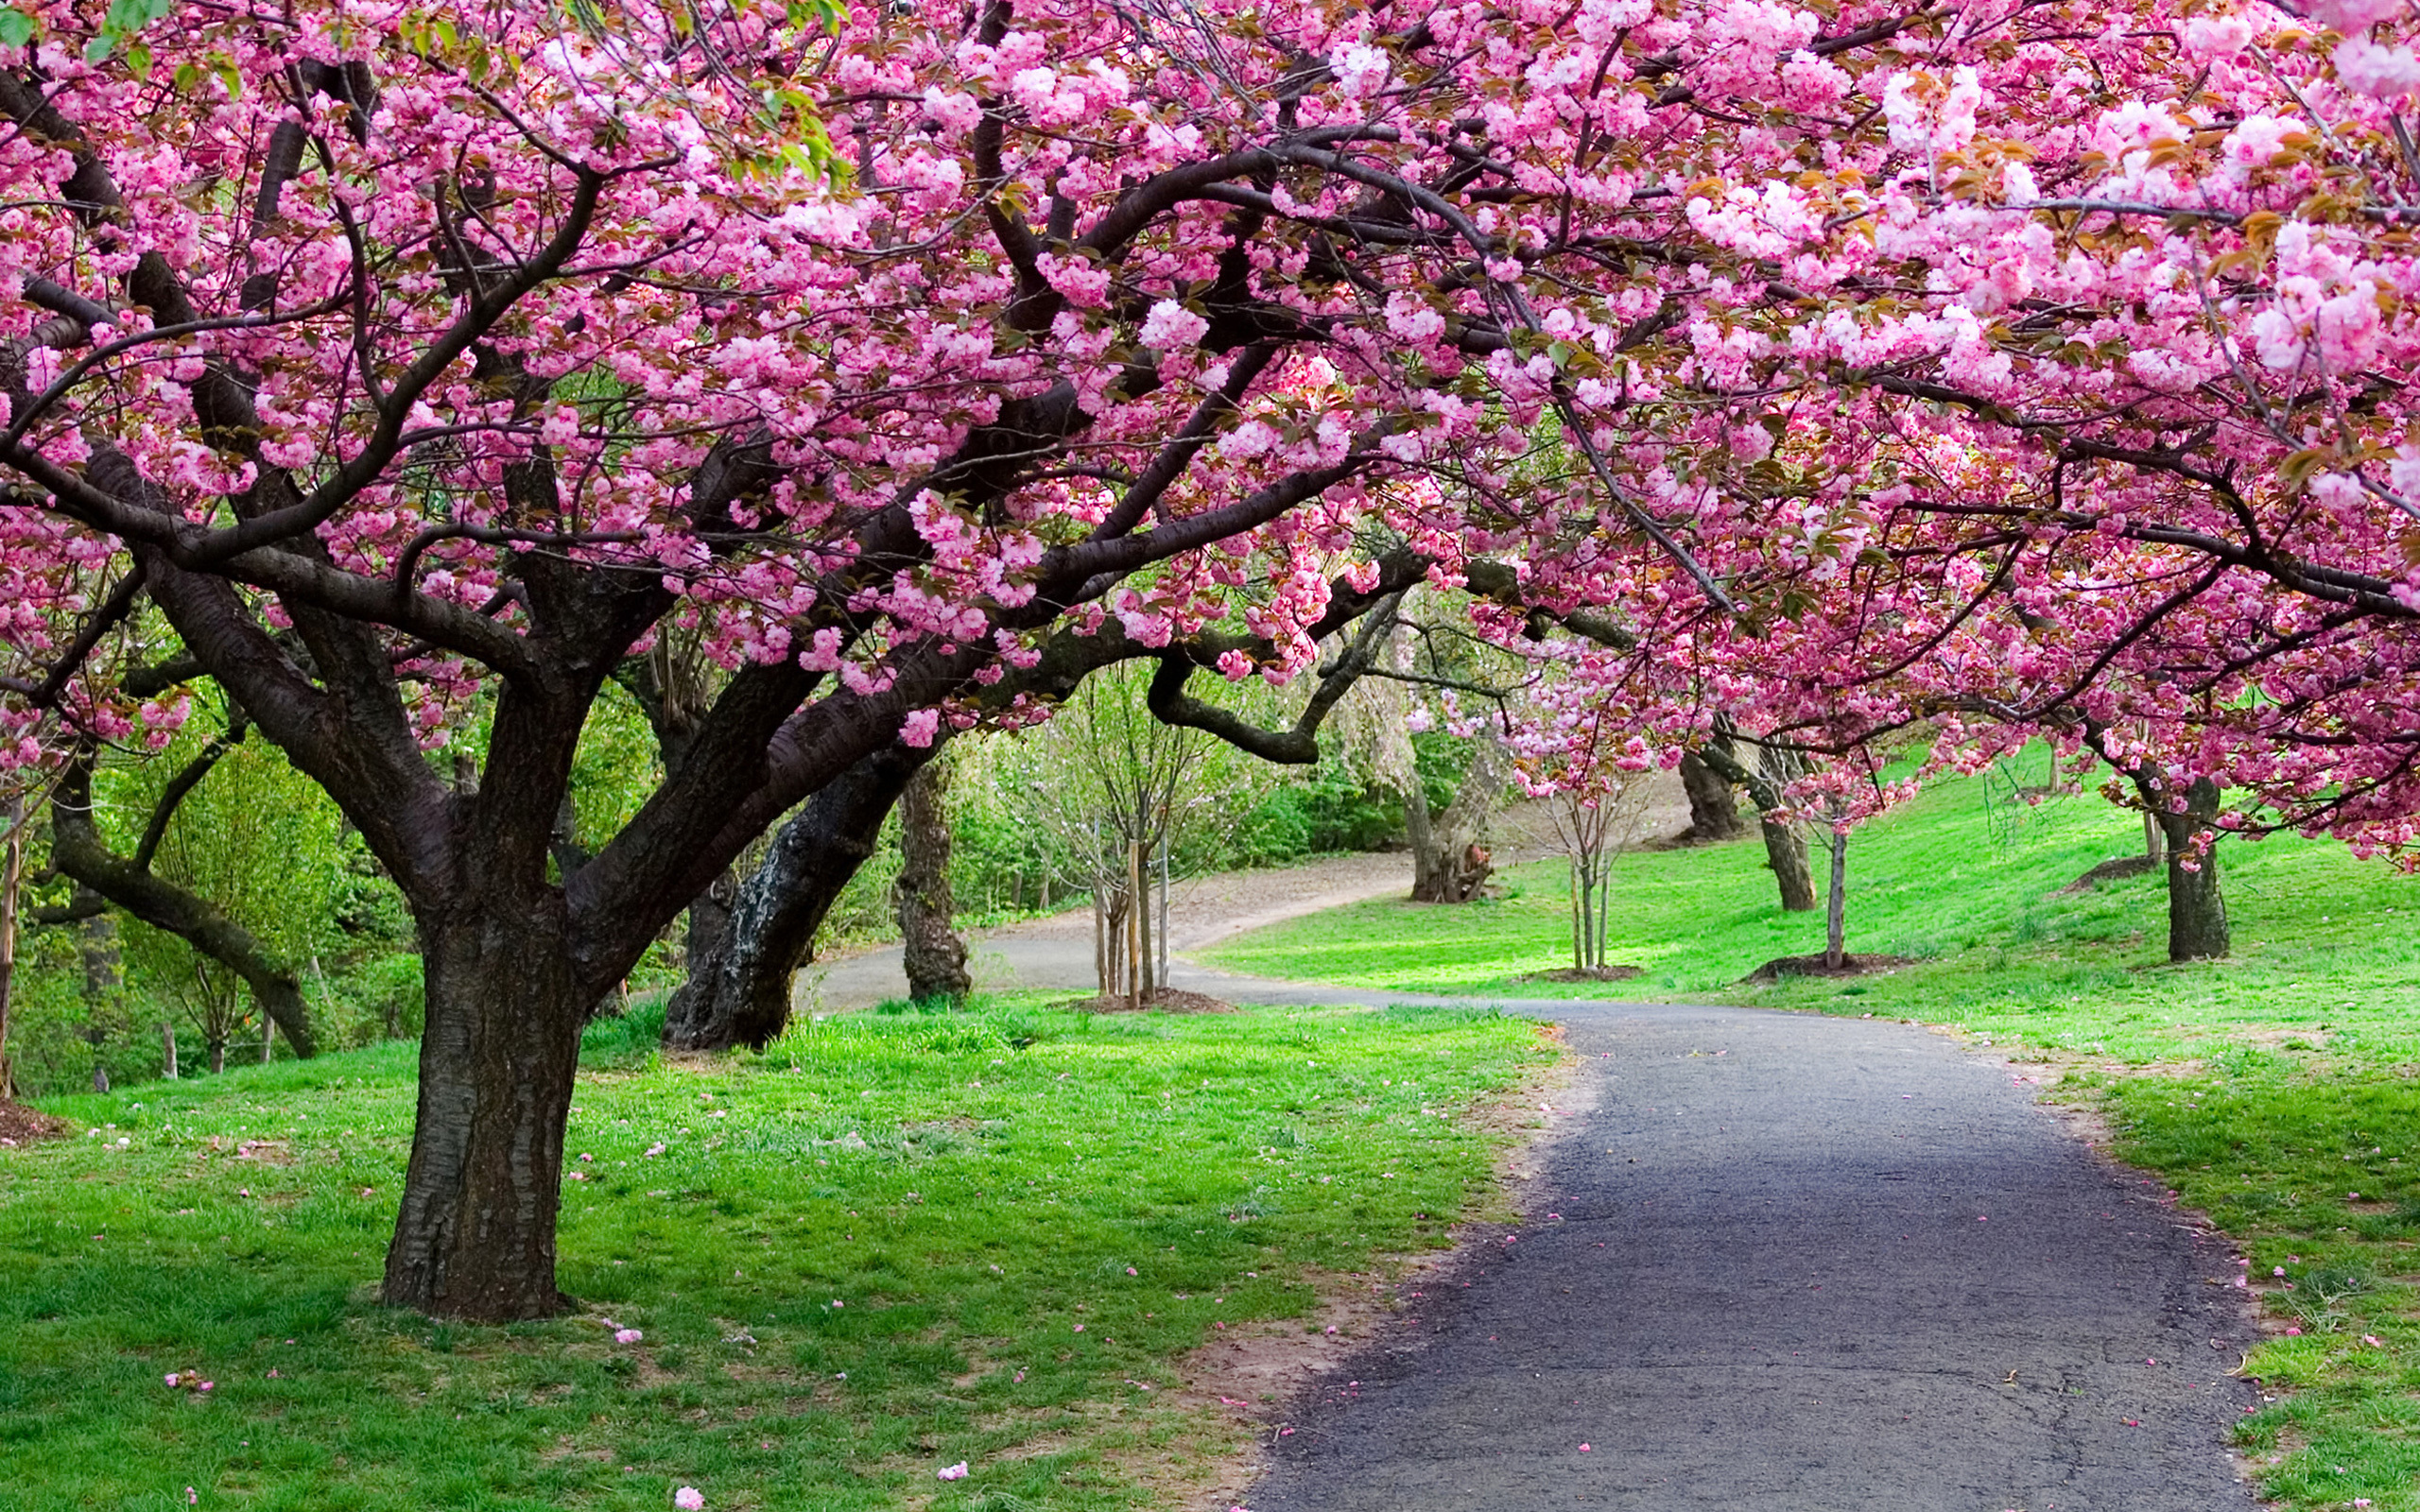 Park Sakura Spring in the garden wallpapers and images   wallpapers 2560x1600